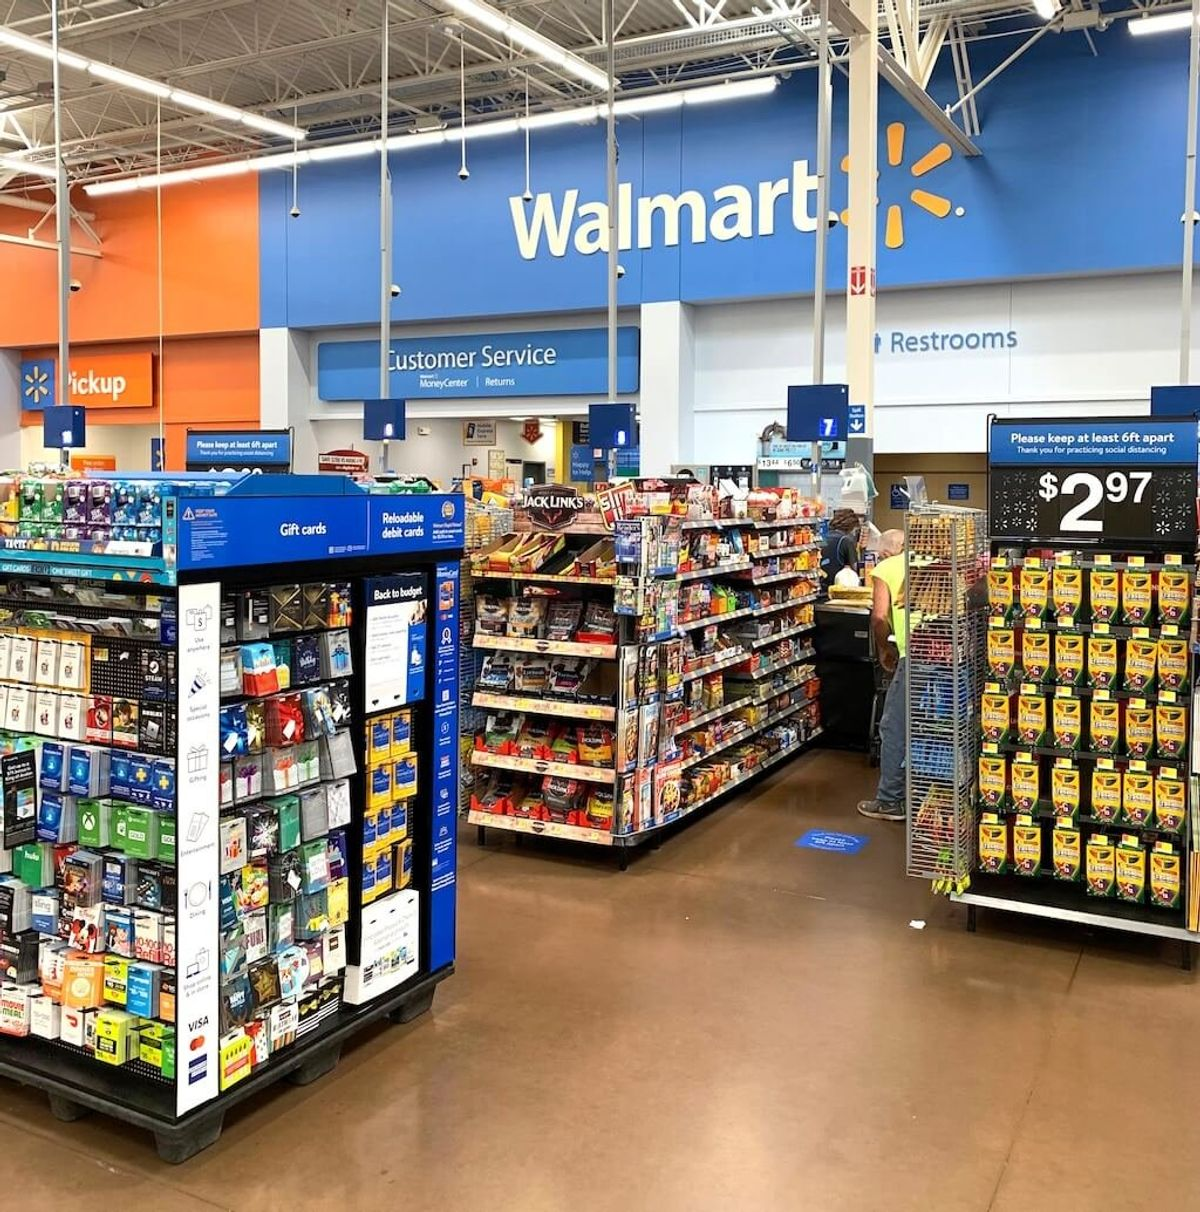 Walmart Pulls Firearms, Ammunition from US Store Floors as Civil Unrest Flares